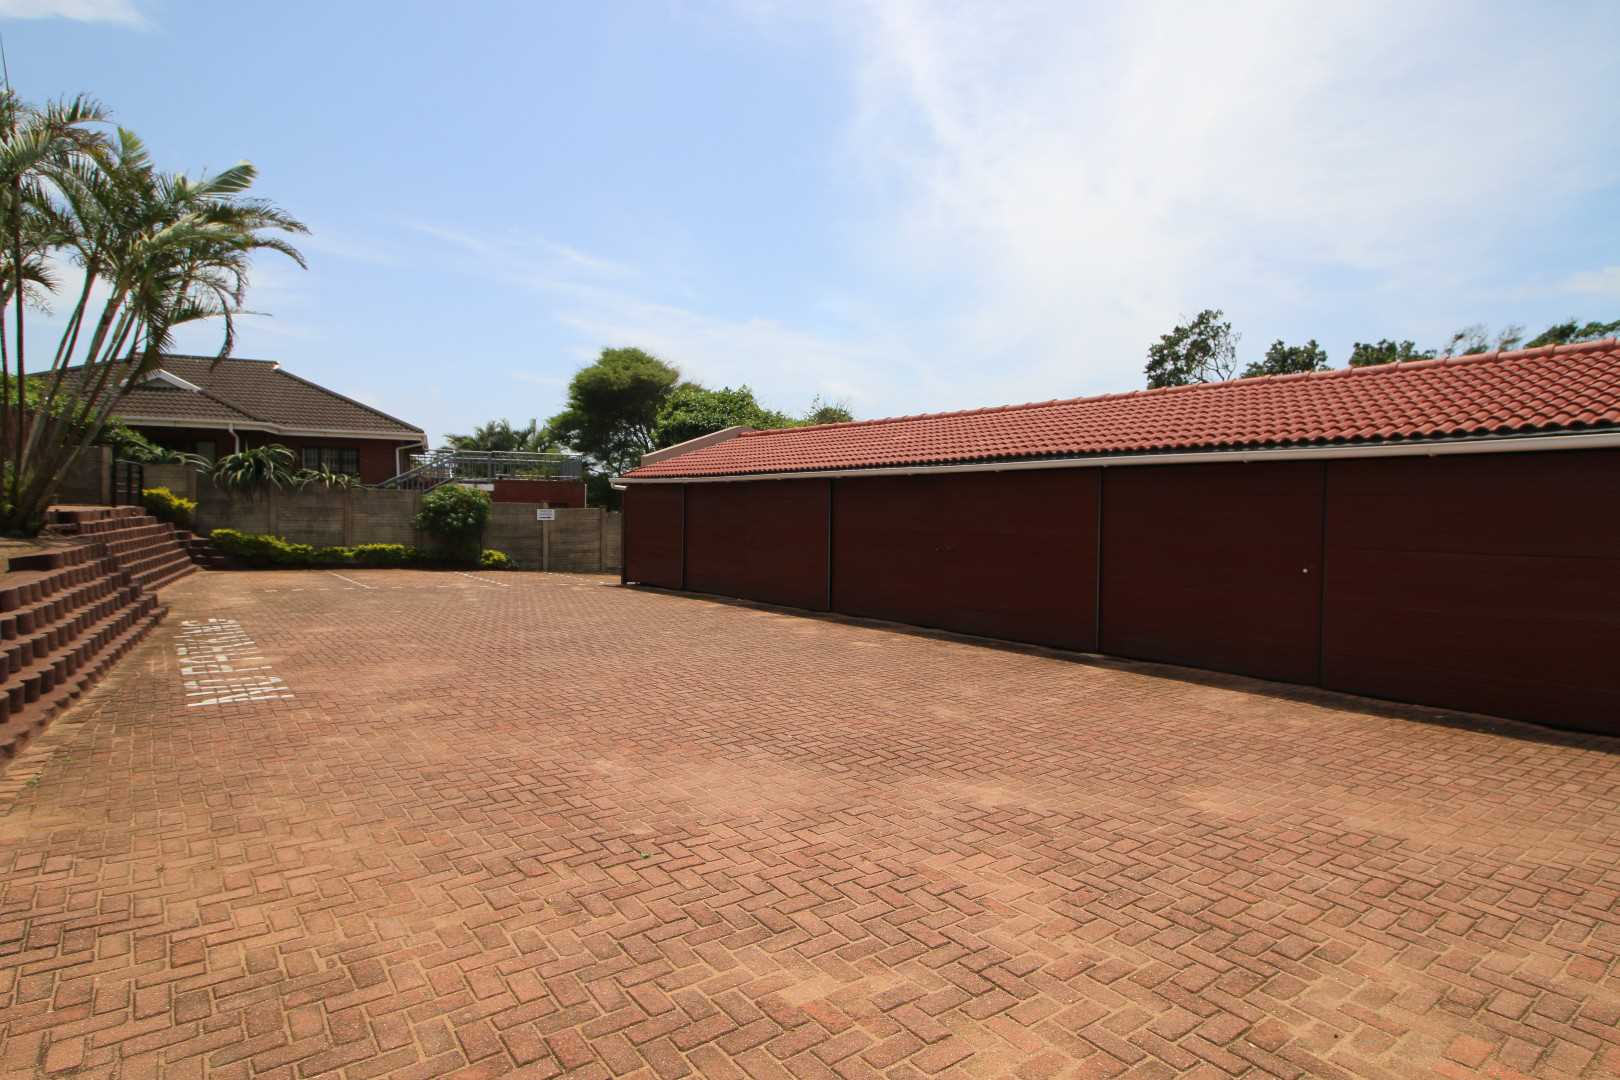 Garages and parking area